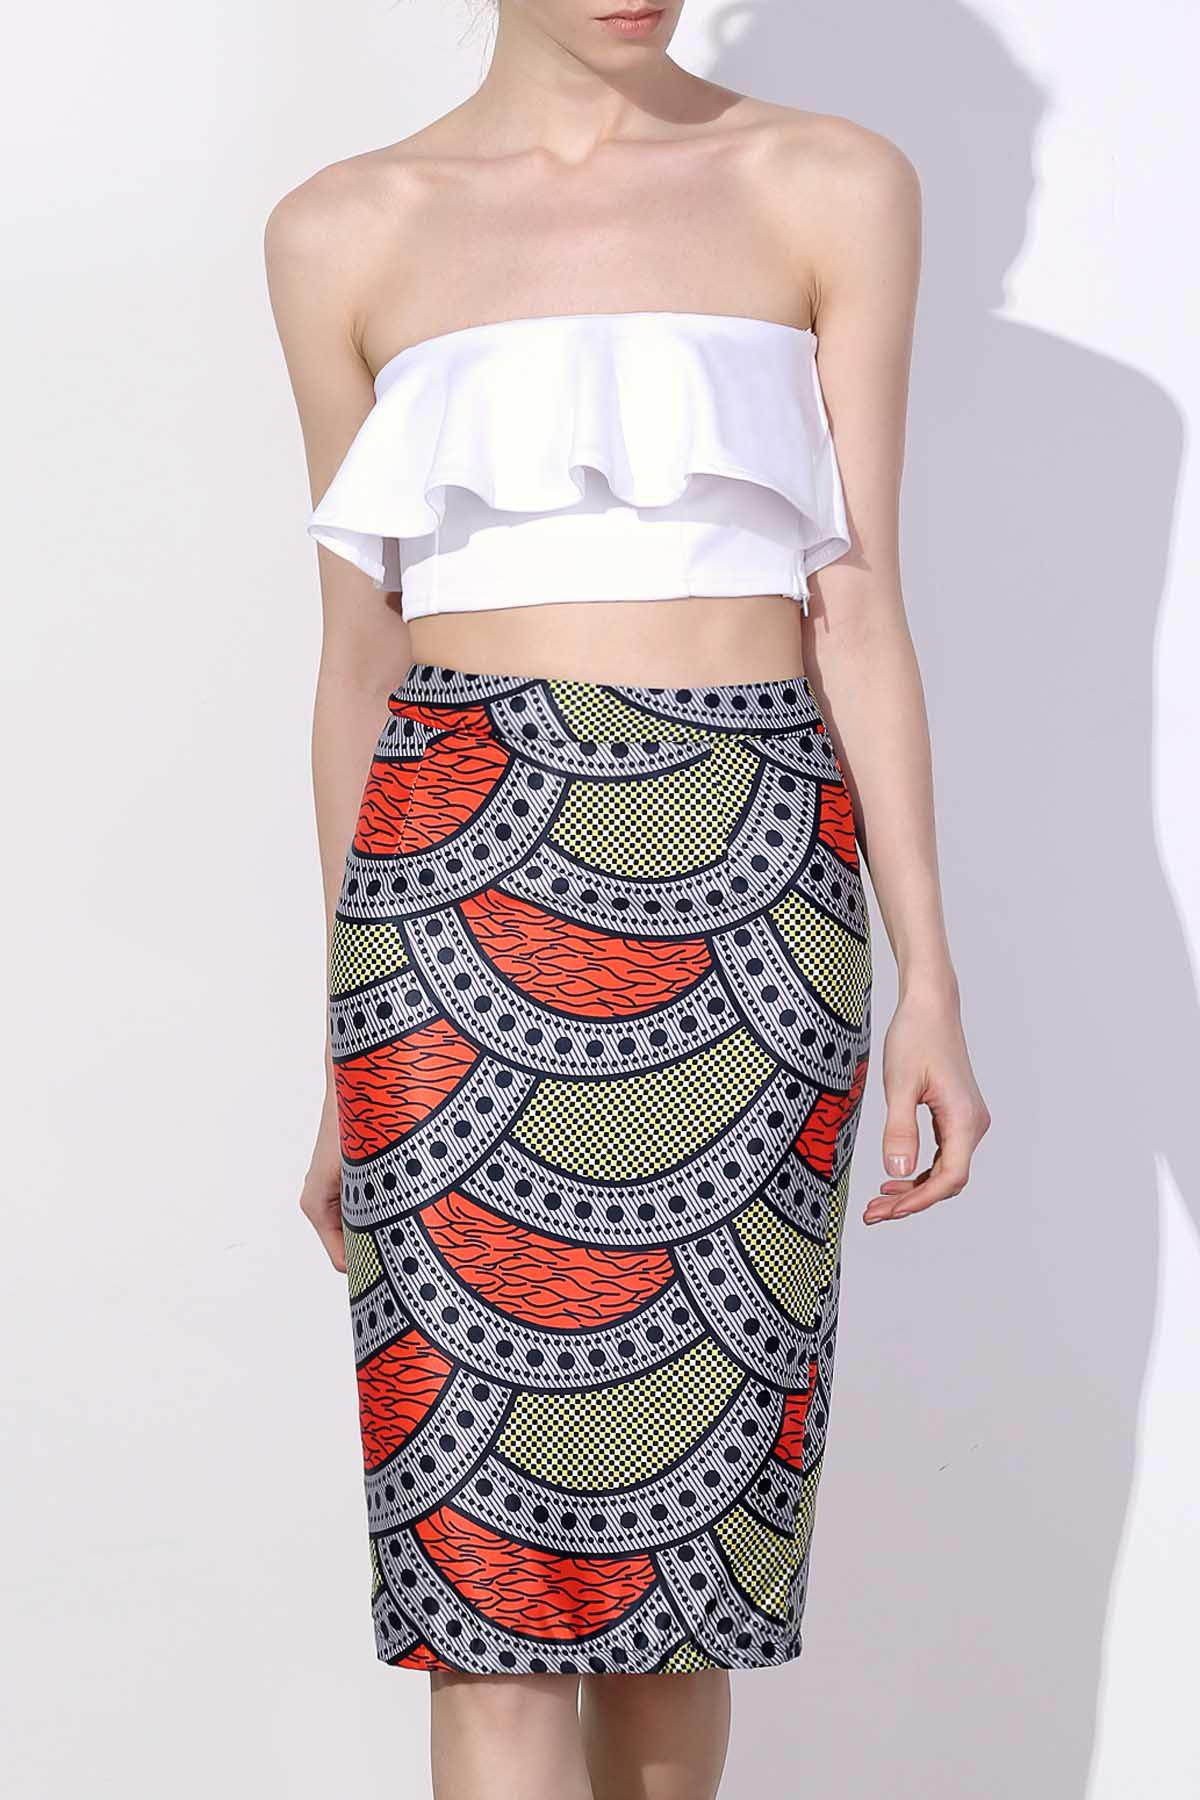 Stylish High-Waisted Bodycon Printed Women's Skirt - COLORMIX M